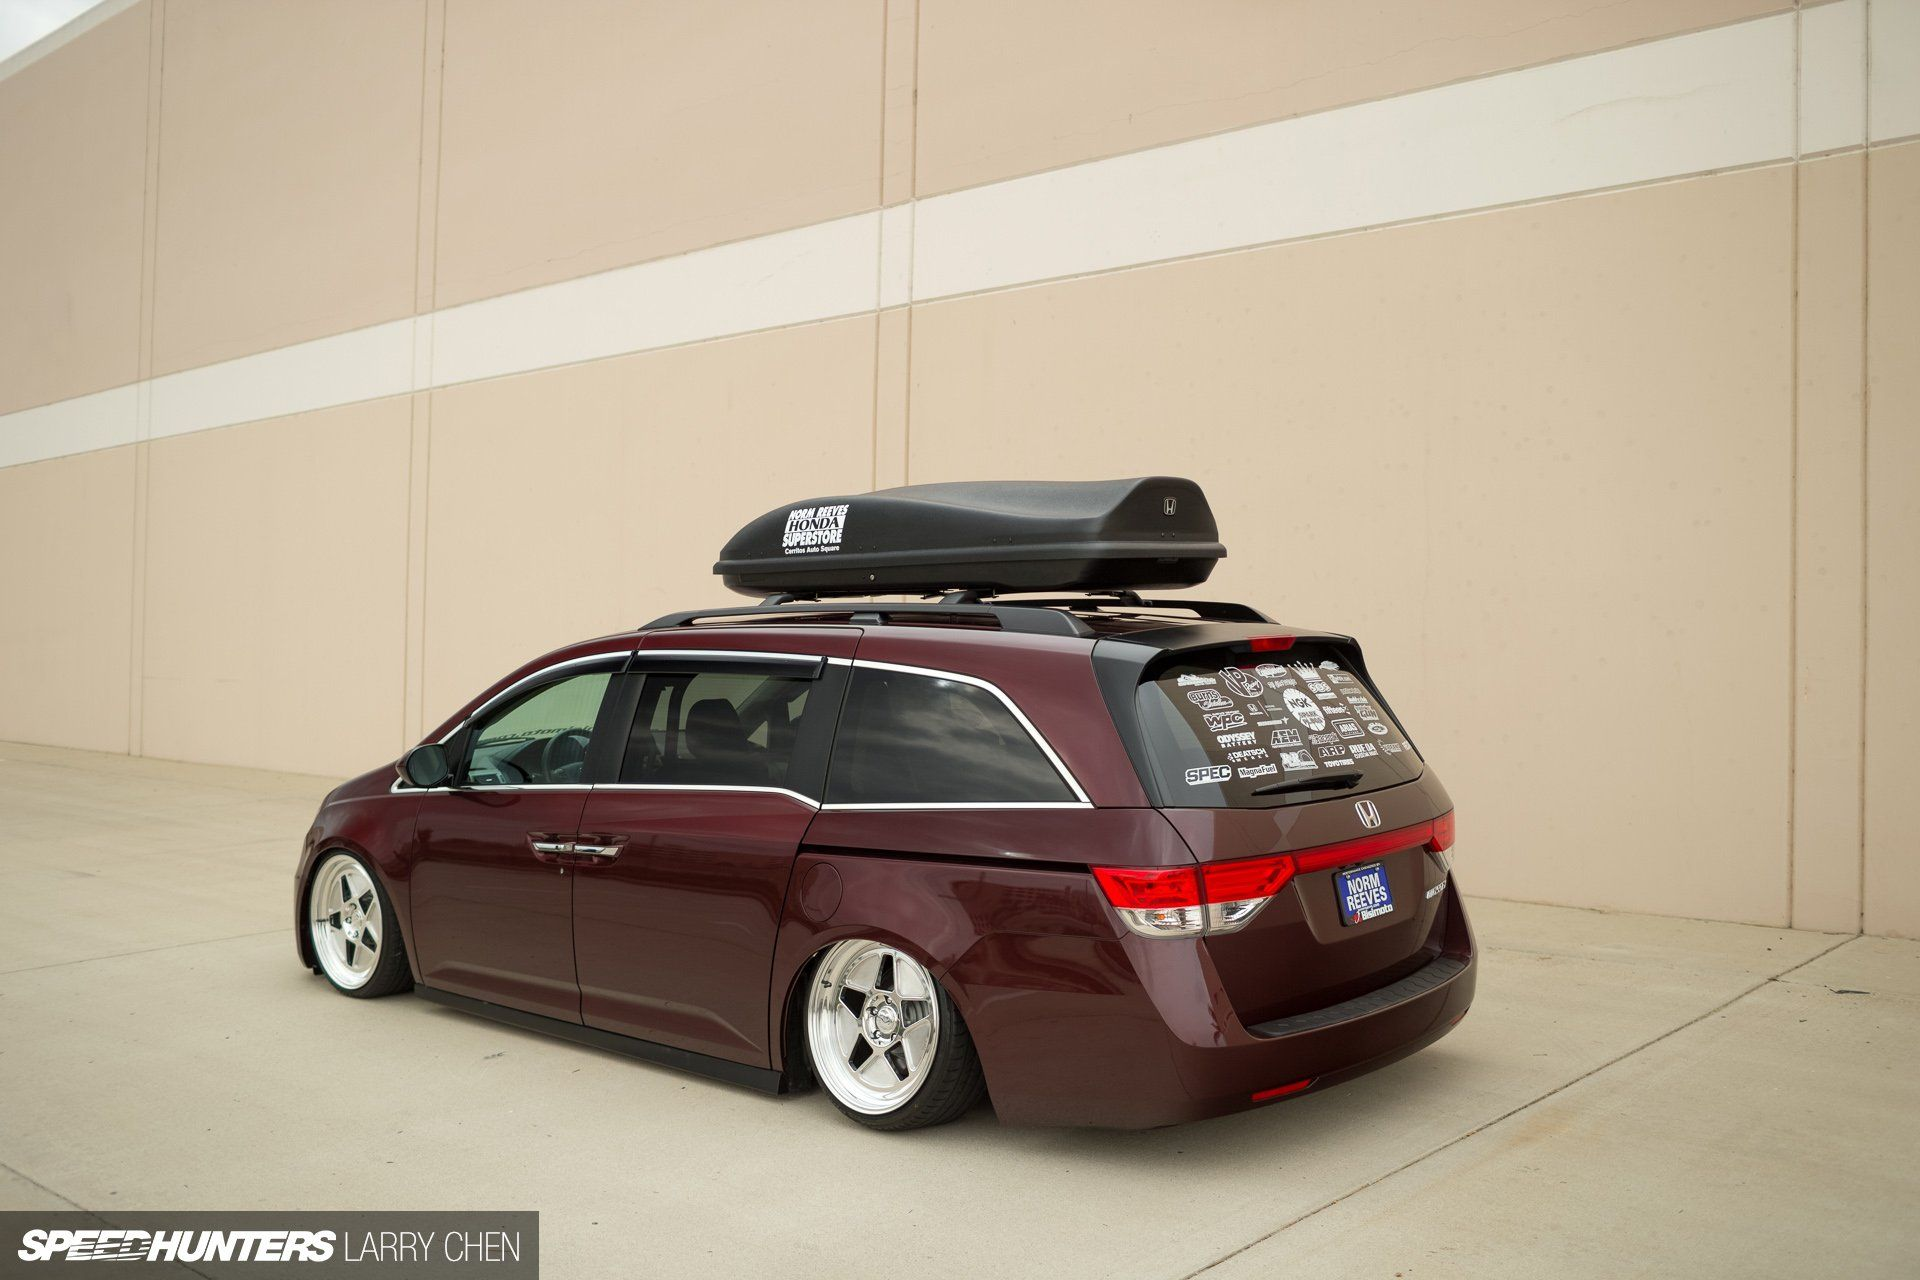 Honda Odyssey Minivan Van Hot Rod Rods Tuning Lowrider 1000hp H Off Road Bumper Guard For Wallpaper Background